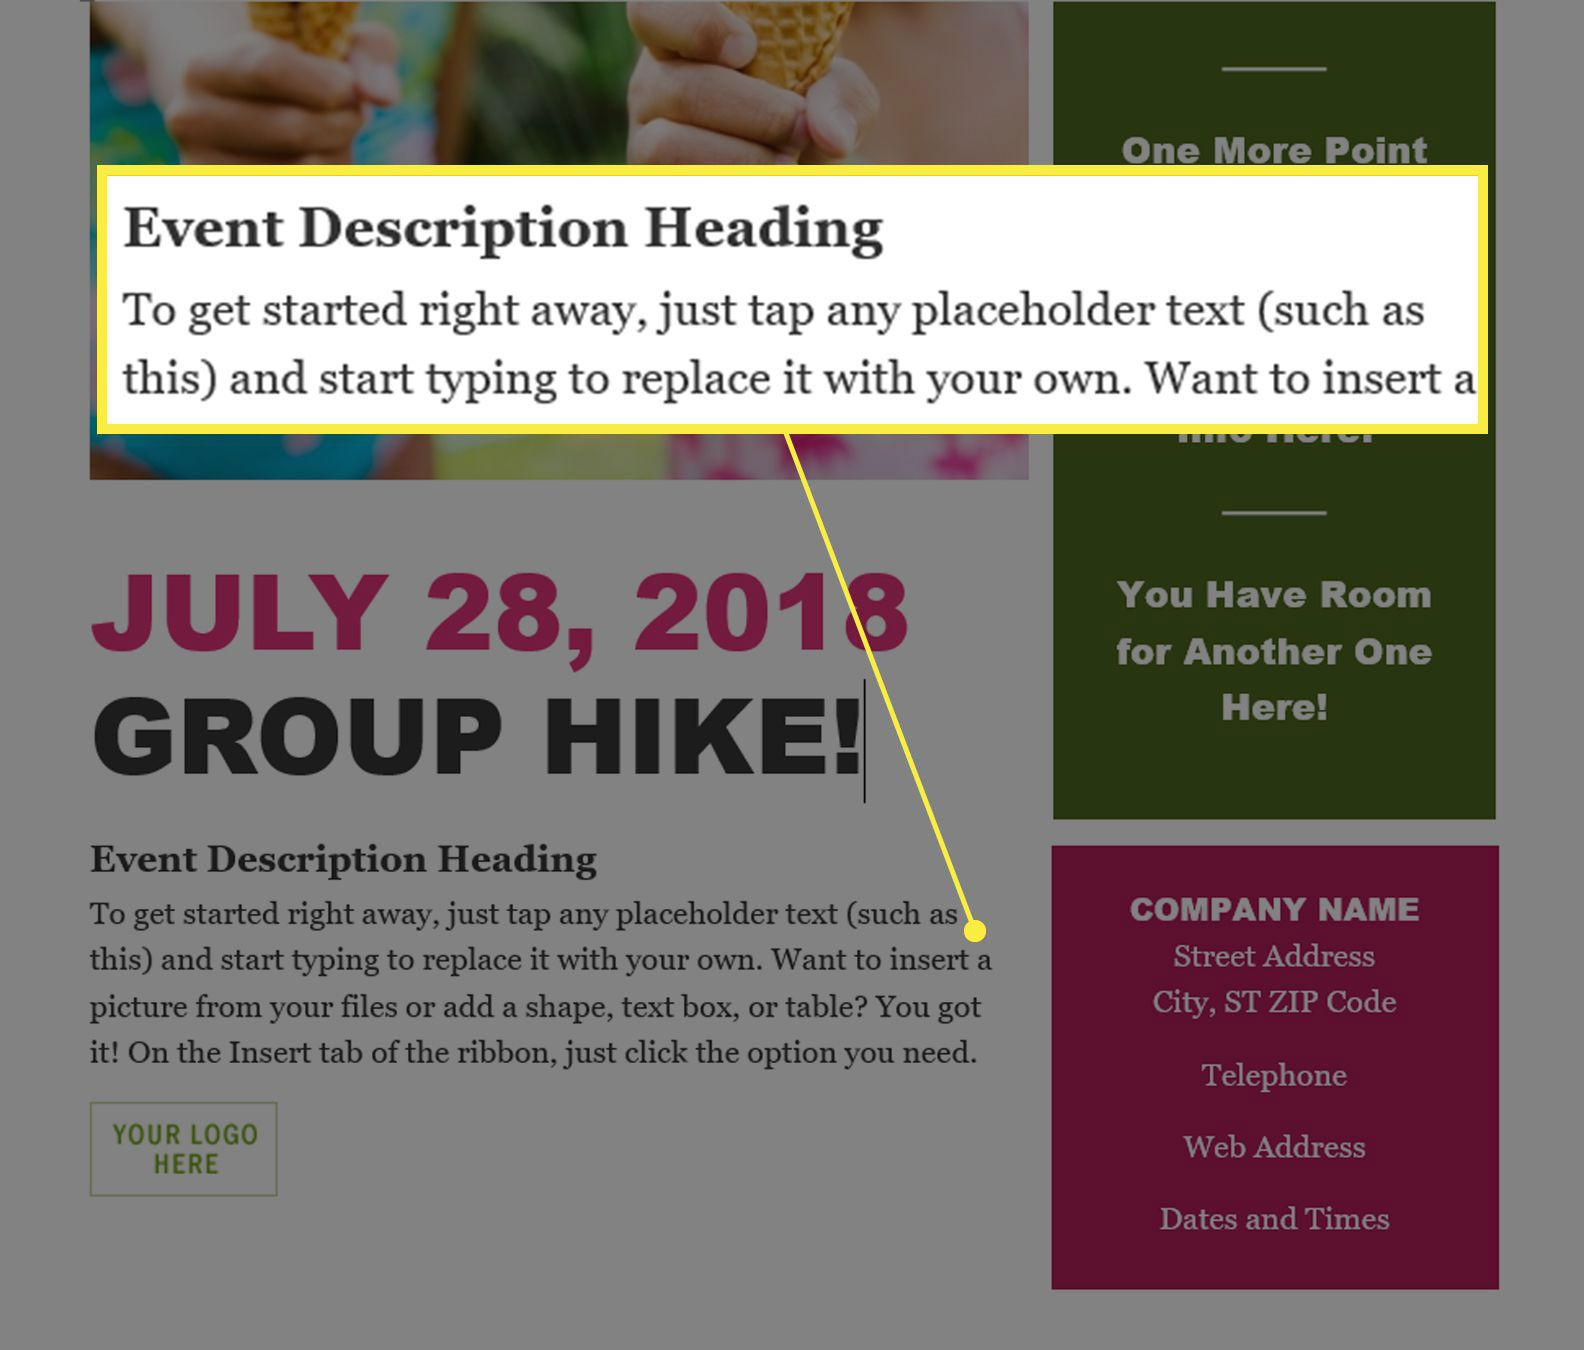 Changing text on a flyer template